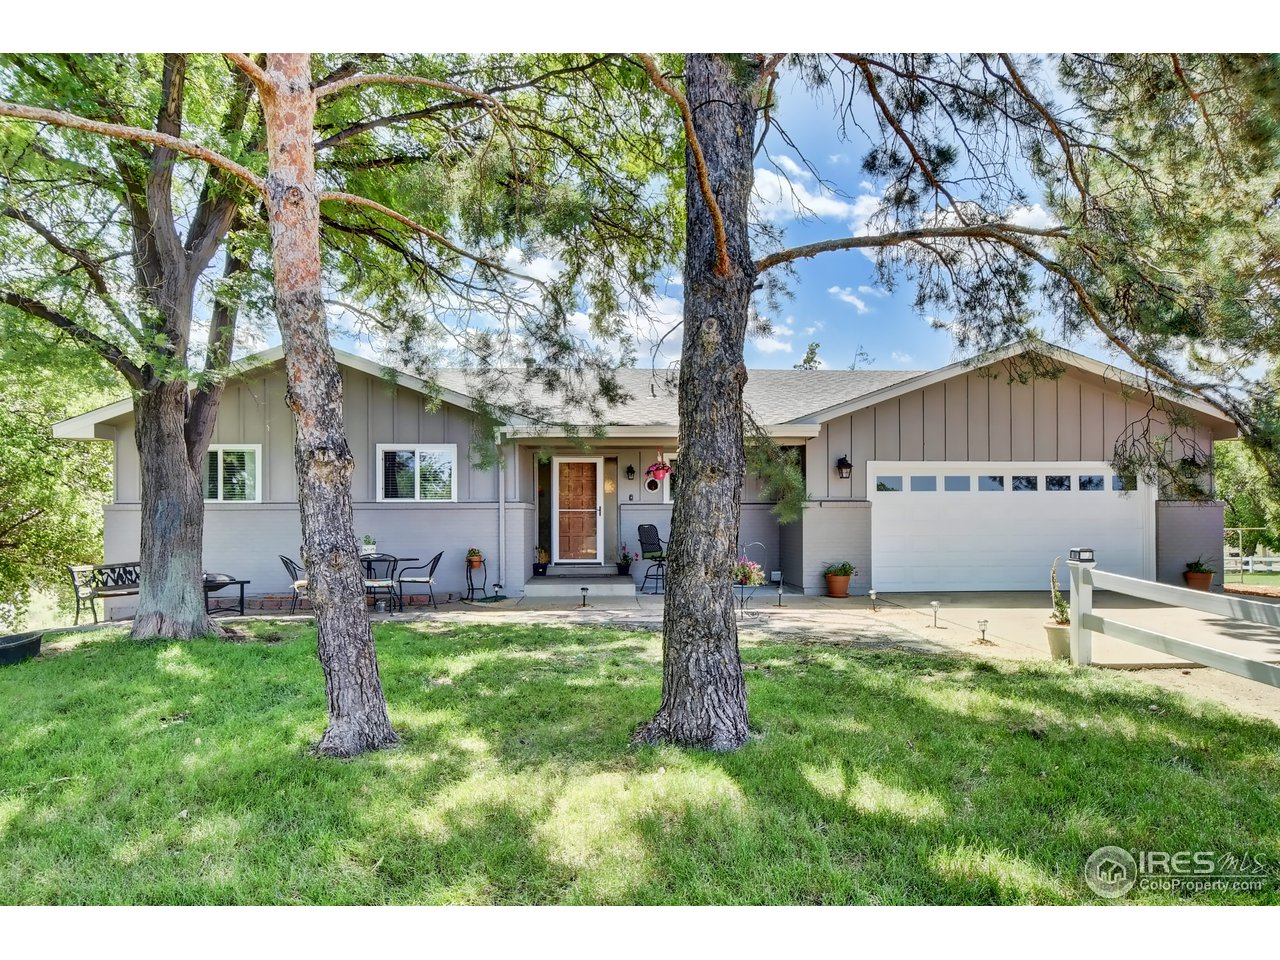 Motivated Sellers! Rarely Available NOT-SO-LITTLE SLICE OF HEAVEN in Desirable Dos Rios! This 3.94 acre Horse Property is your place of escape! Natural beauty everywhere you look! 3292 sqft, 5 bed/3 bath Ranch style with bright walk-out basement.  New Paint in & out, new roof, new floors, remodeled Kitchen & Master Bath, Clean, move-in-ready! Outdoor sprinkler system, storage barn w/ Tack Room & chicken coop.  Country living but SO close to shopping & restaurants & schools.